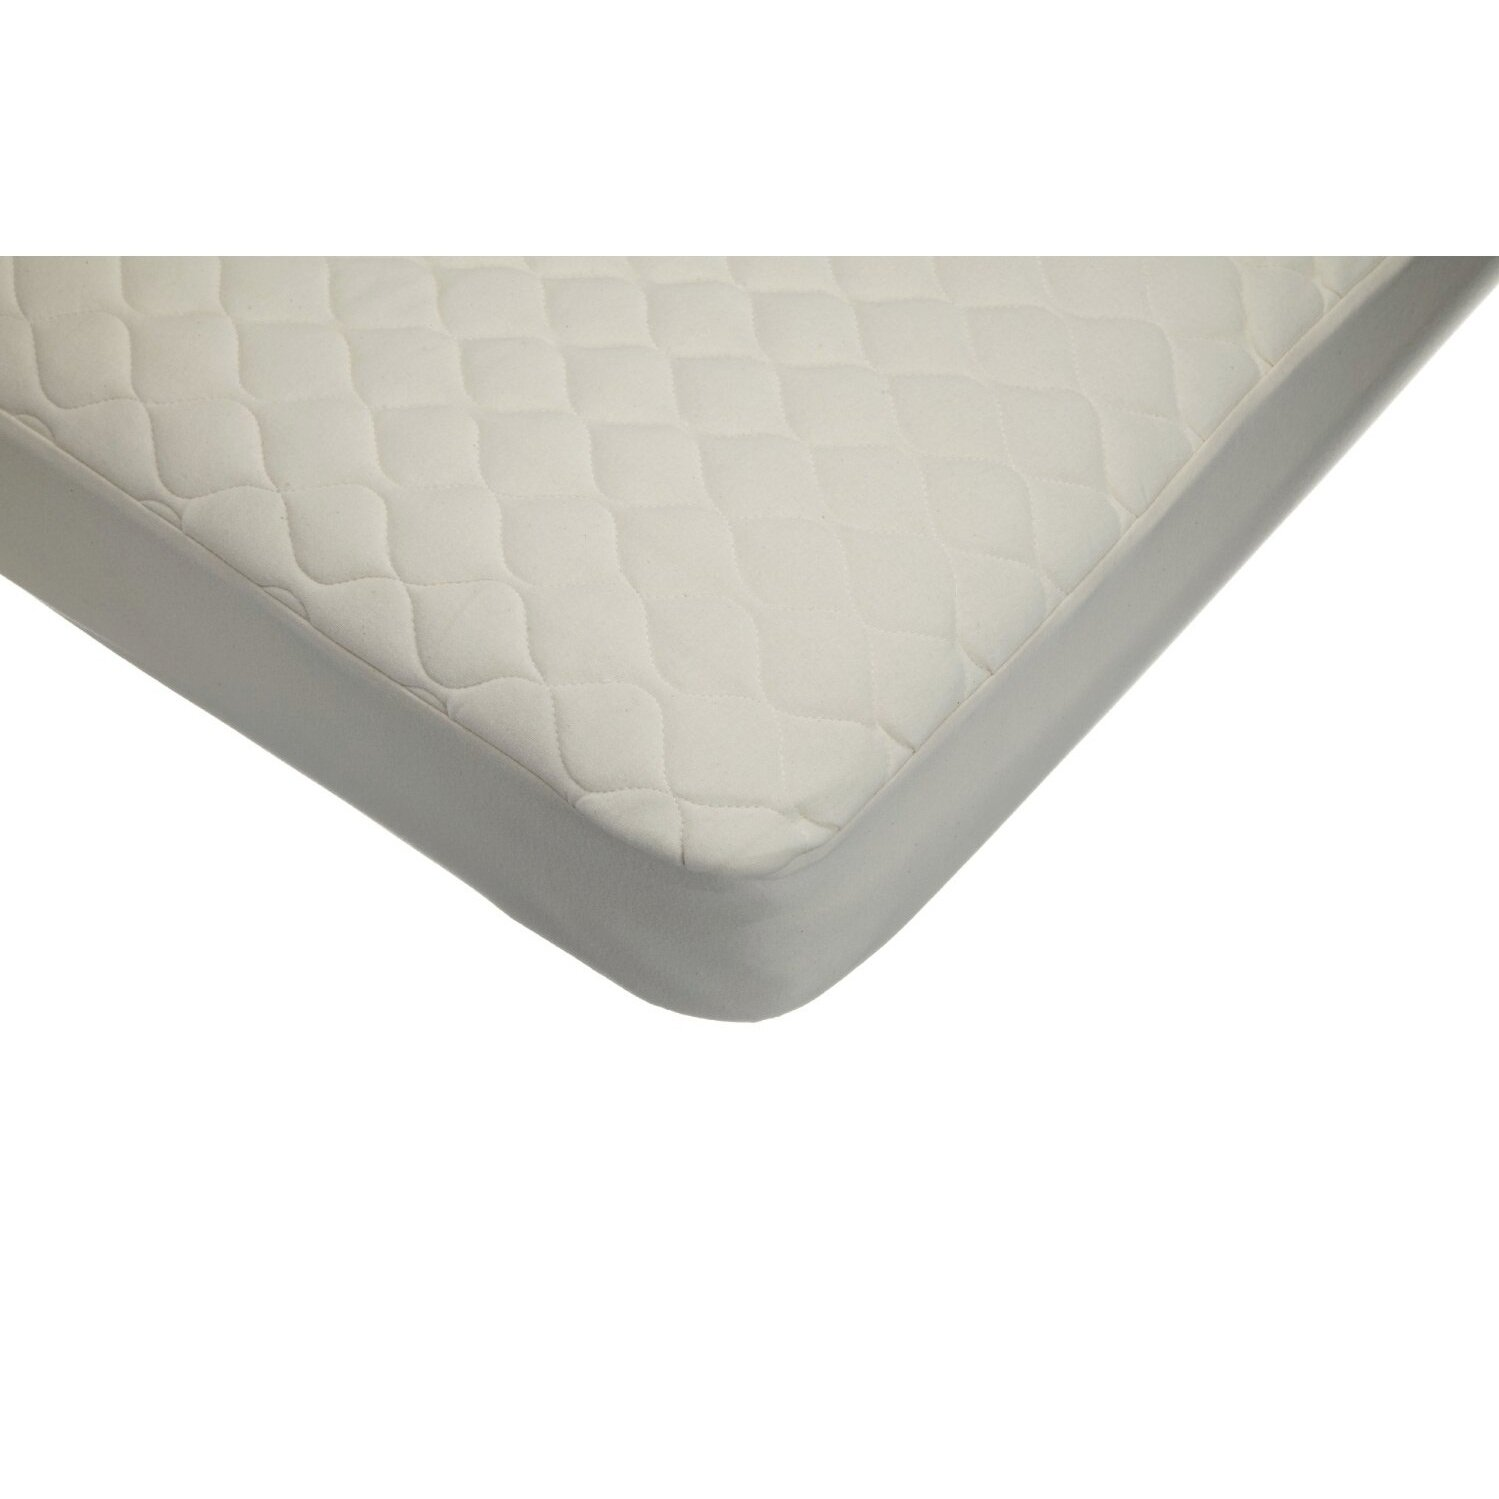 Best baby crib mattress pad - American Baby Company Quilted Crib And Toddler Fitted Mattress Pad